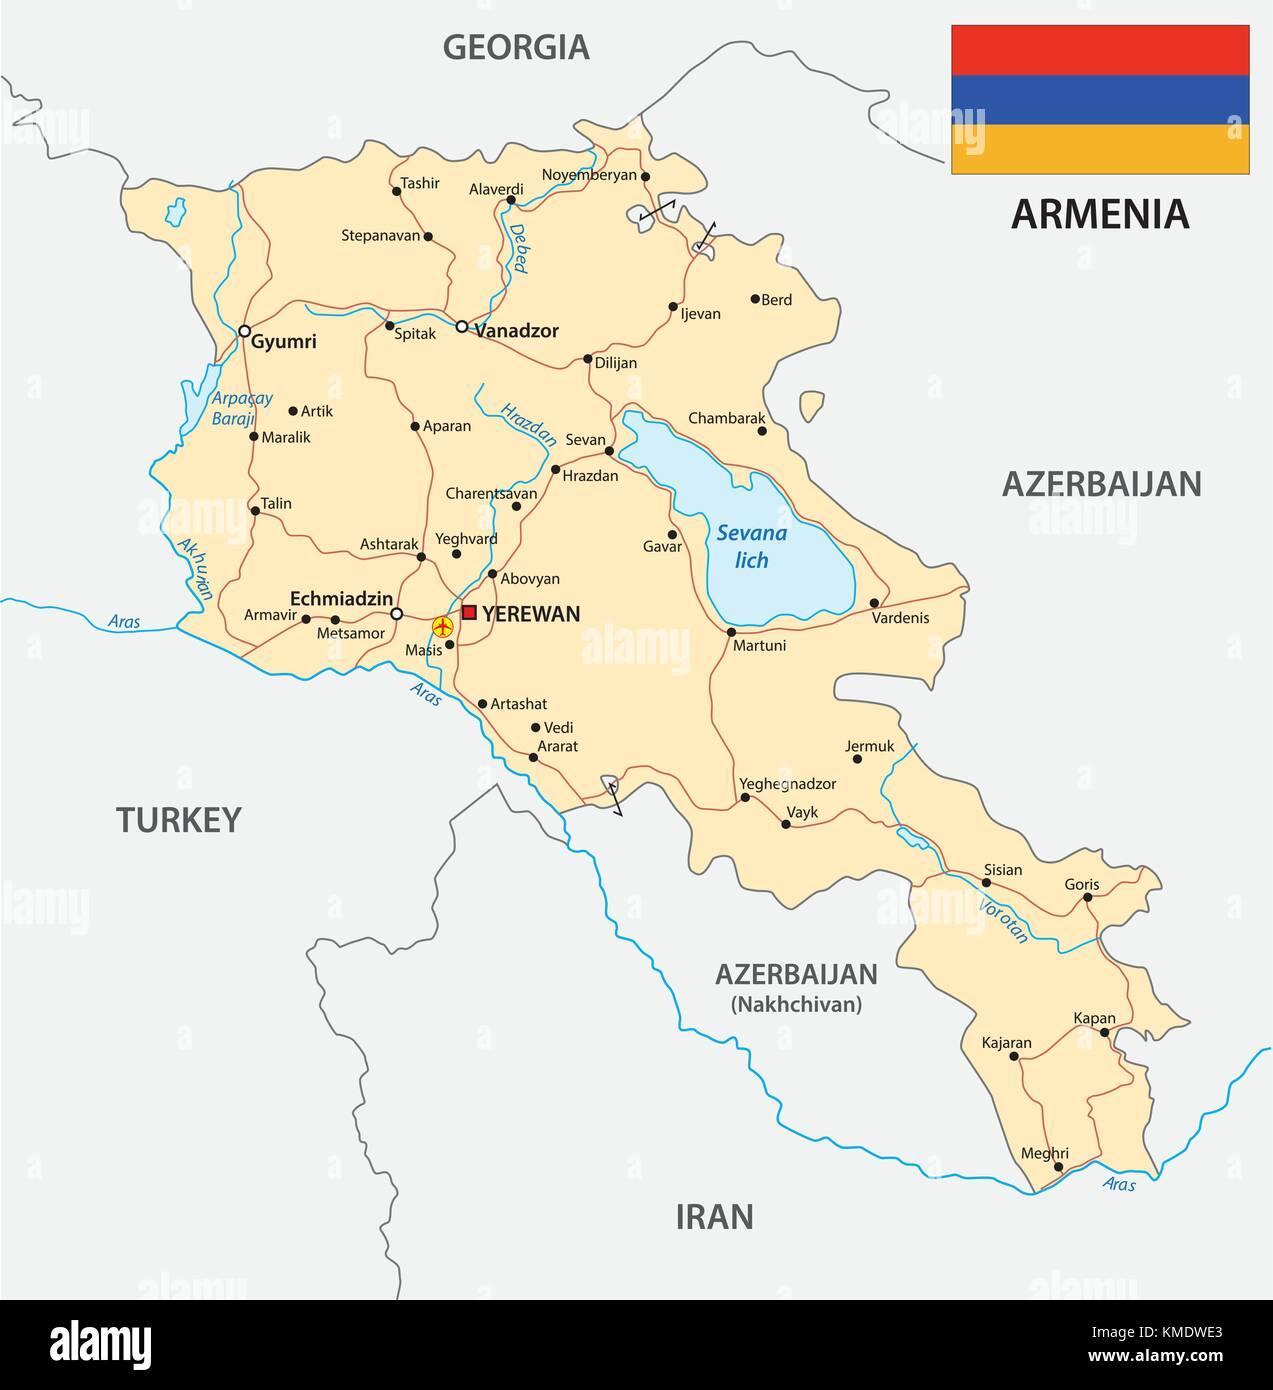 armenia road vector map with flag - Stock Image